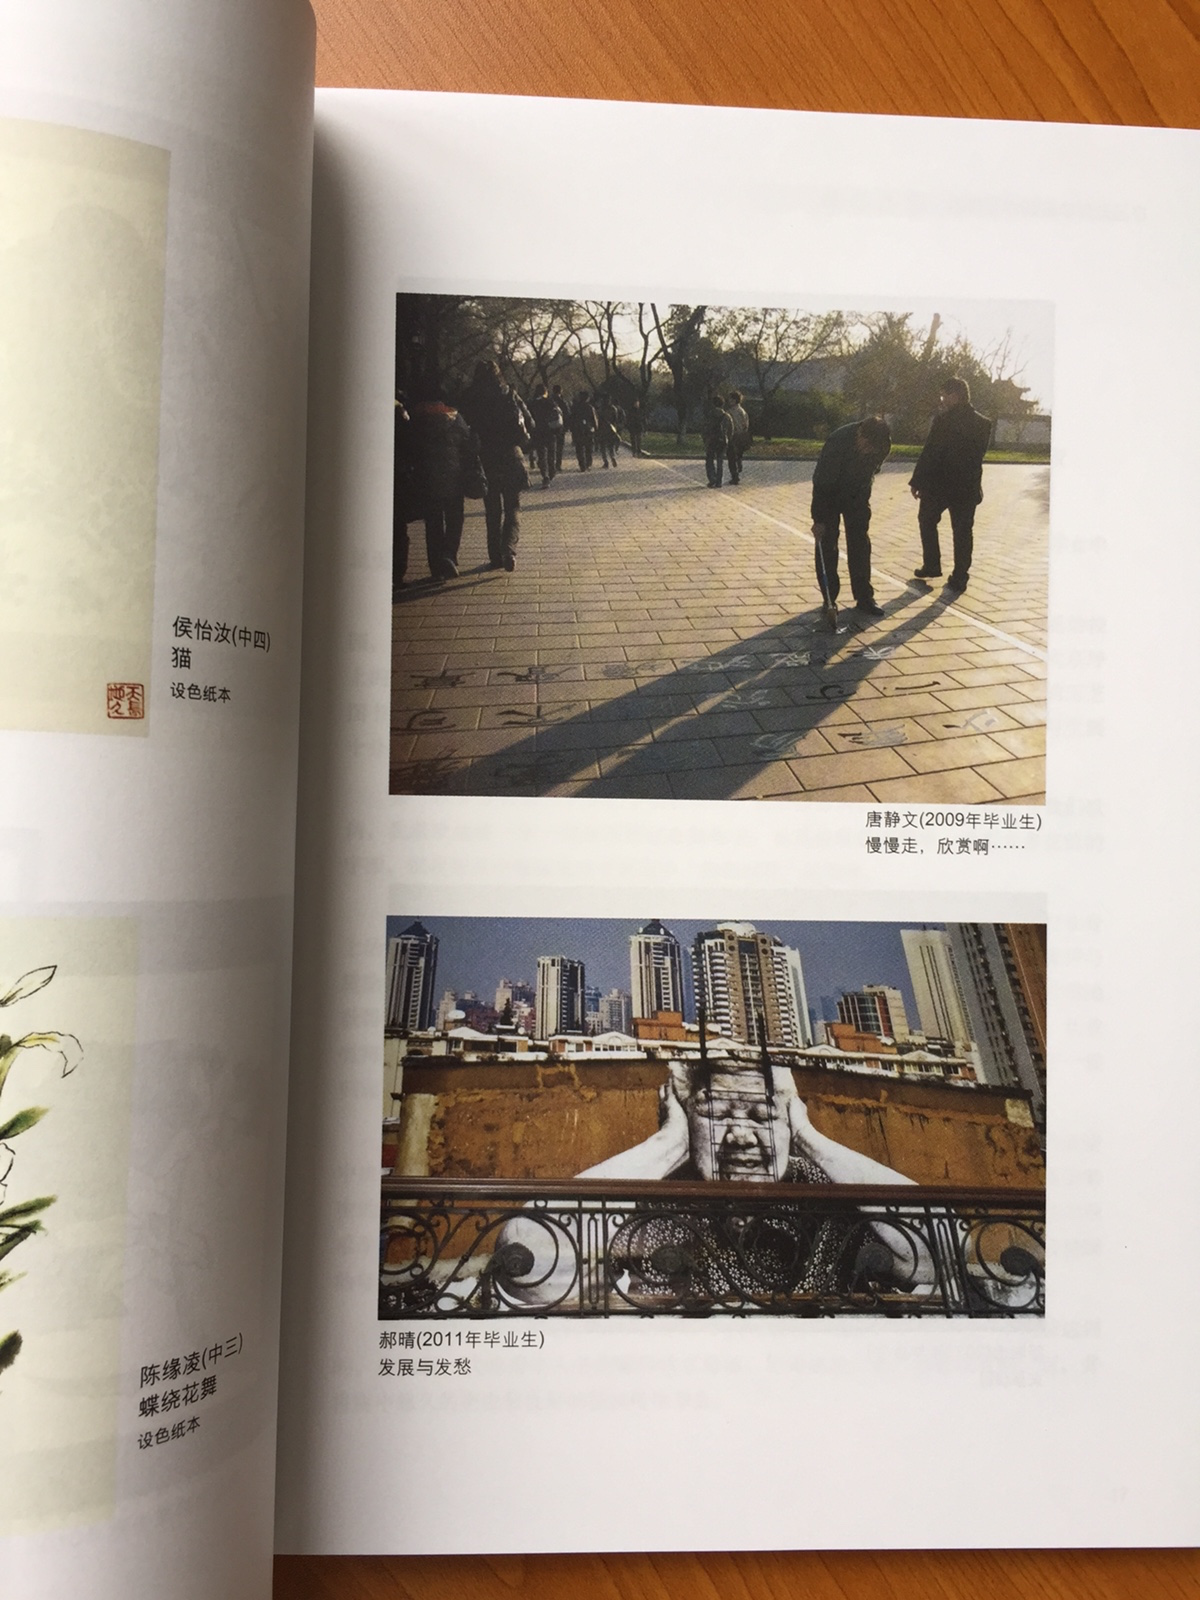 Prints in the book, showing the sights the students saw through their own individual learning journeys.